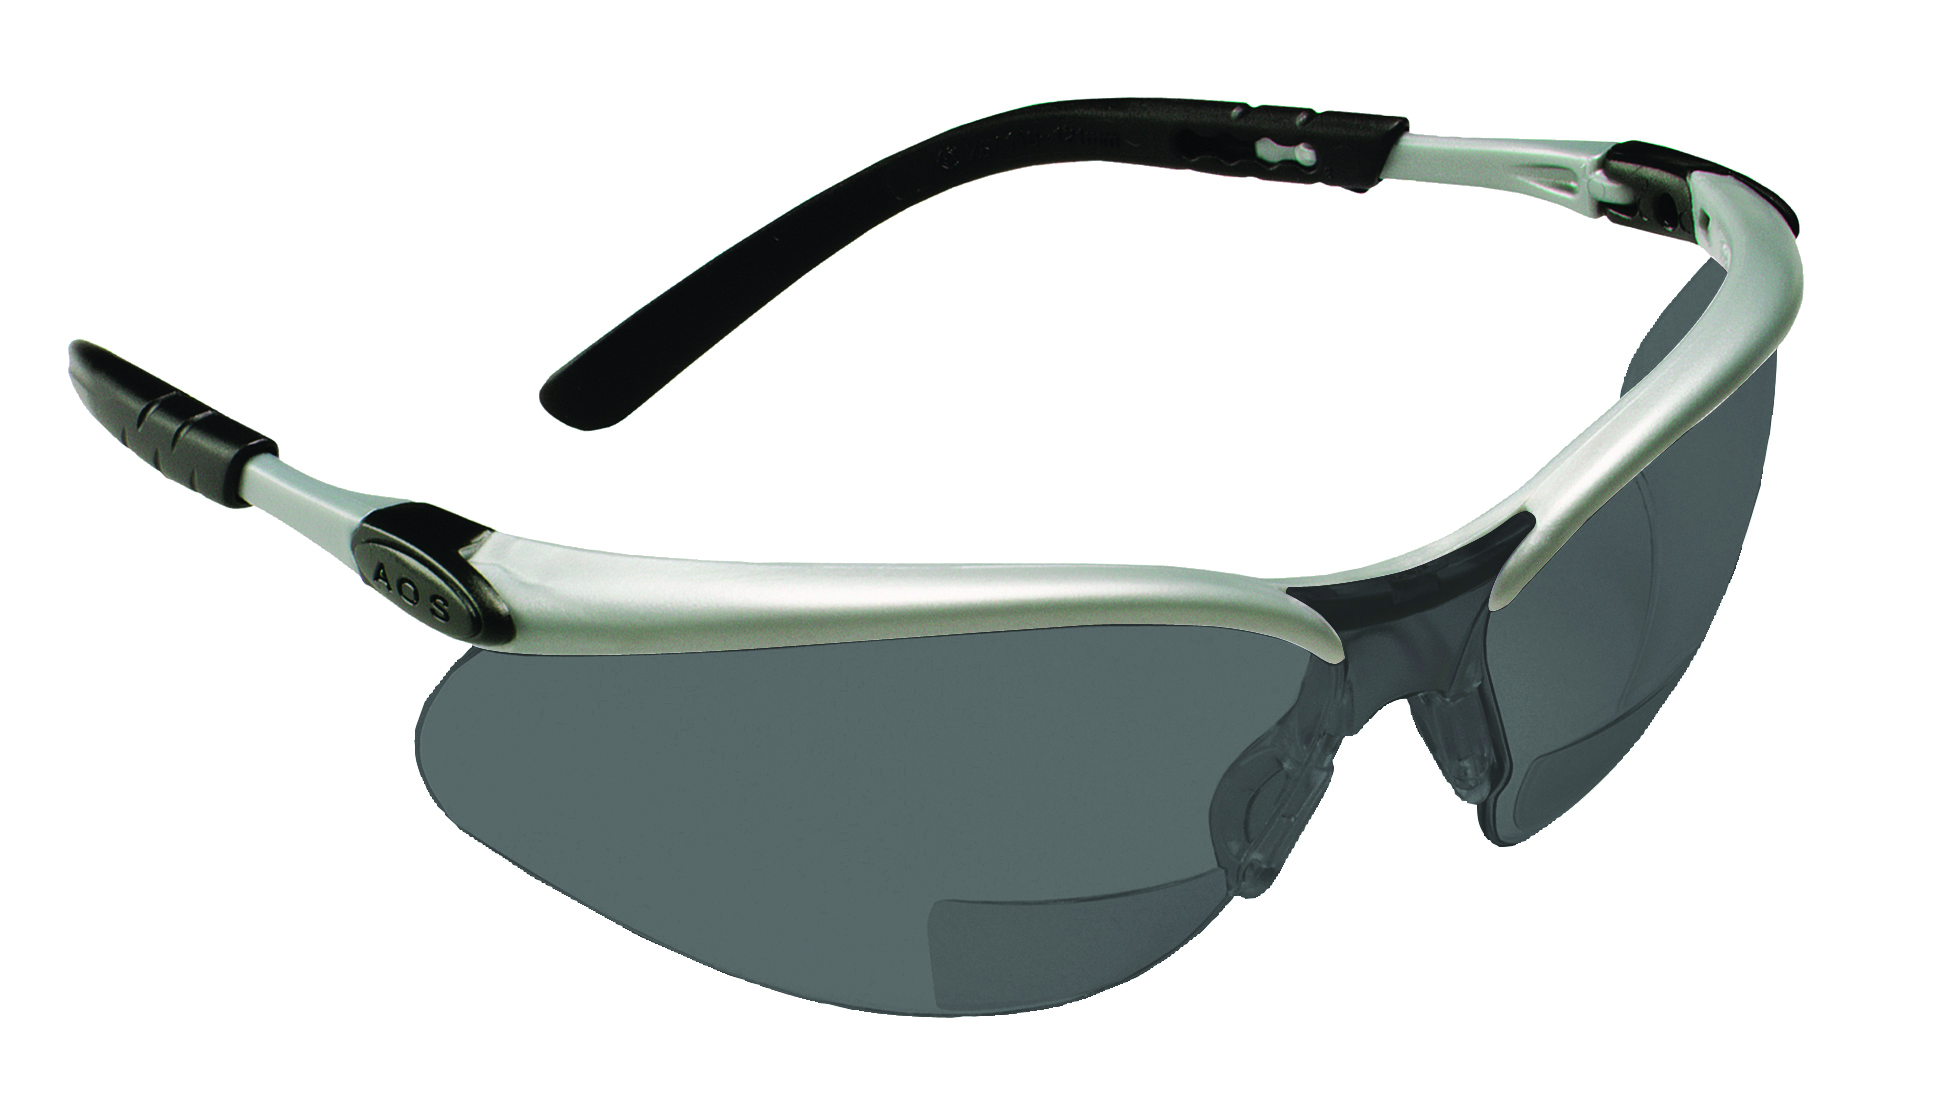 11379-00000-20 - 3M™ BX™ Readers Safety Eyewear-Gray +2.5 Diopter Lens, Silver/Black Frame-----UOM: 1/EA